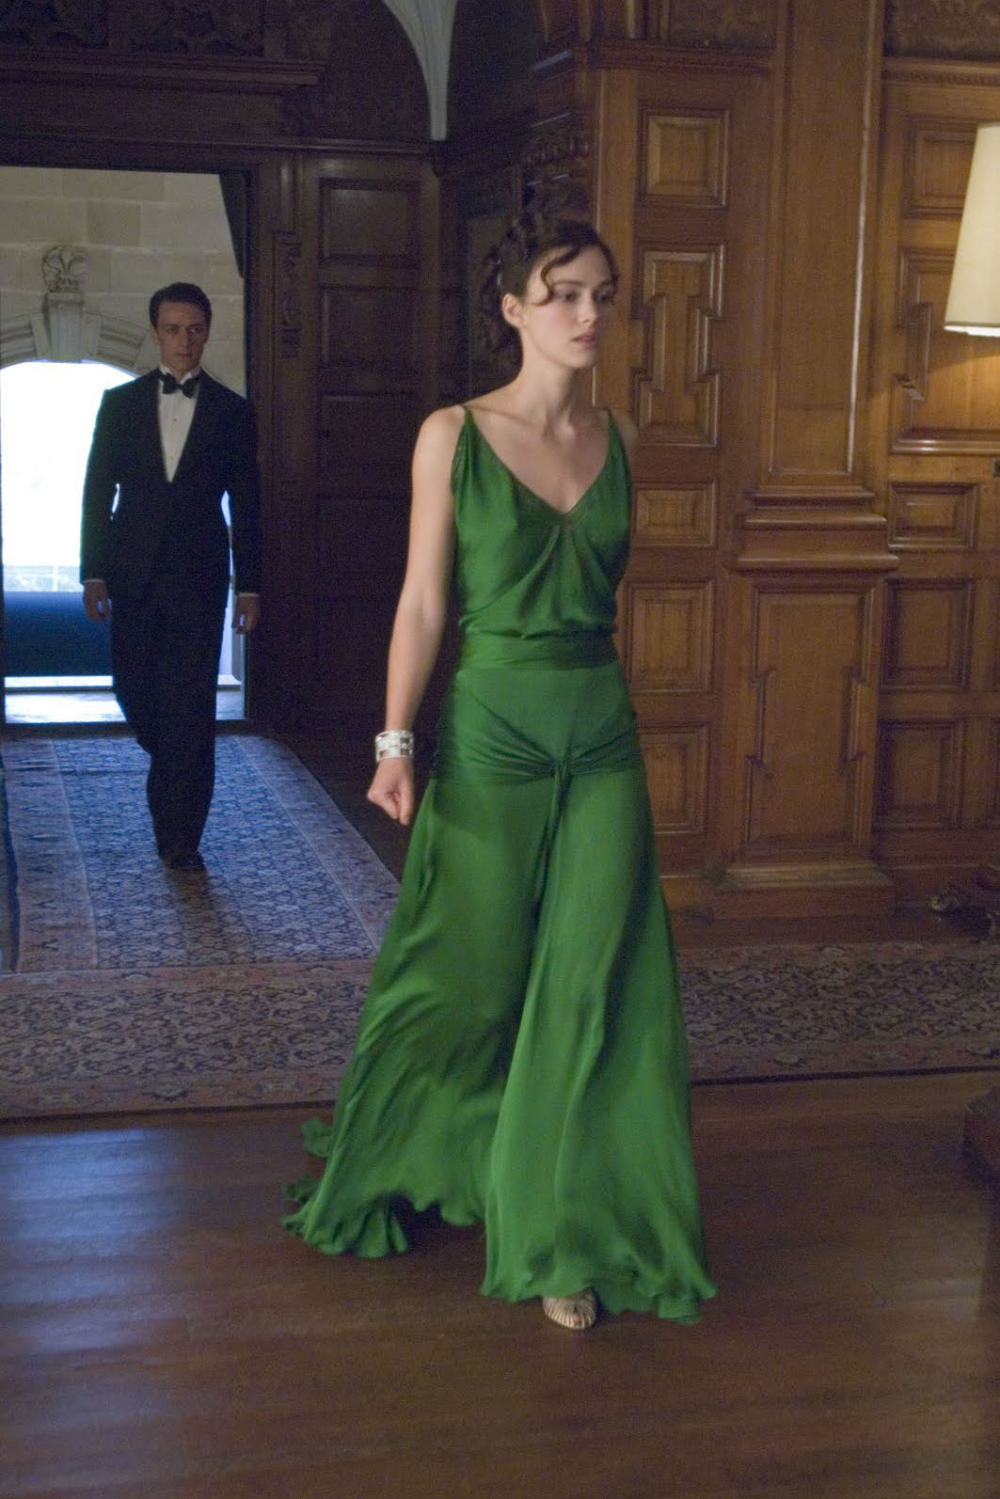 Keira Knightley Green Vintage Evening Dress In Movie Atonement For Sale Ts0002 Evening Dresses Vintage Iconic Dresses Keira Knightley [ 1499 x 1000 Pixel ]